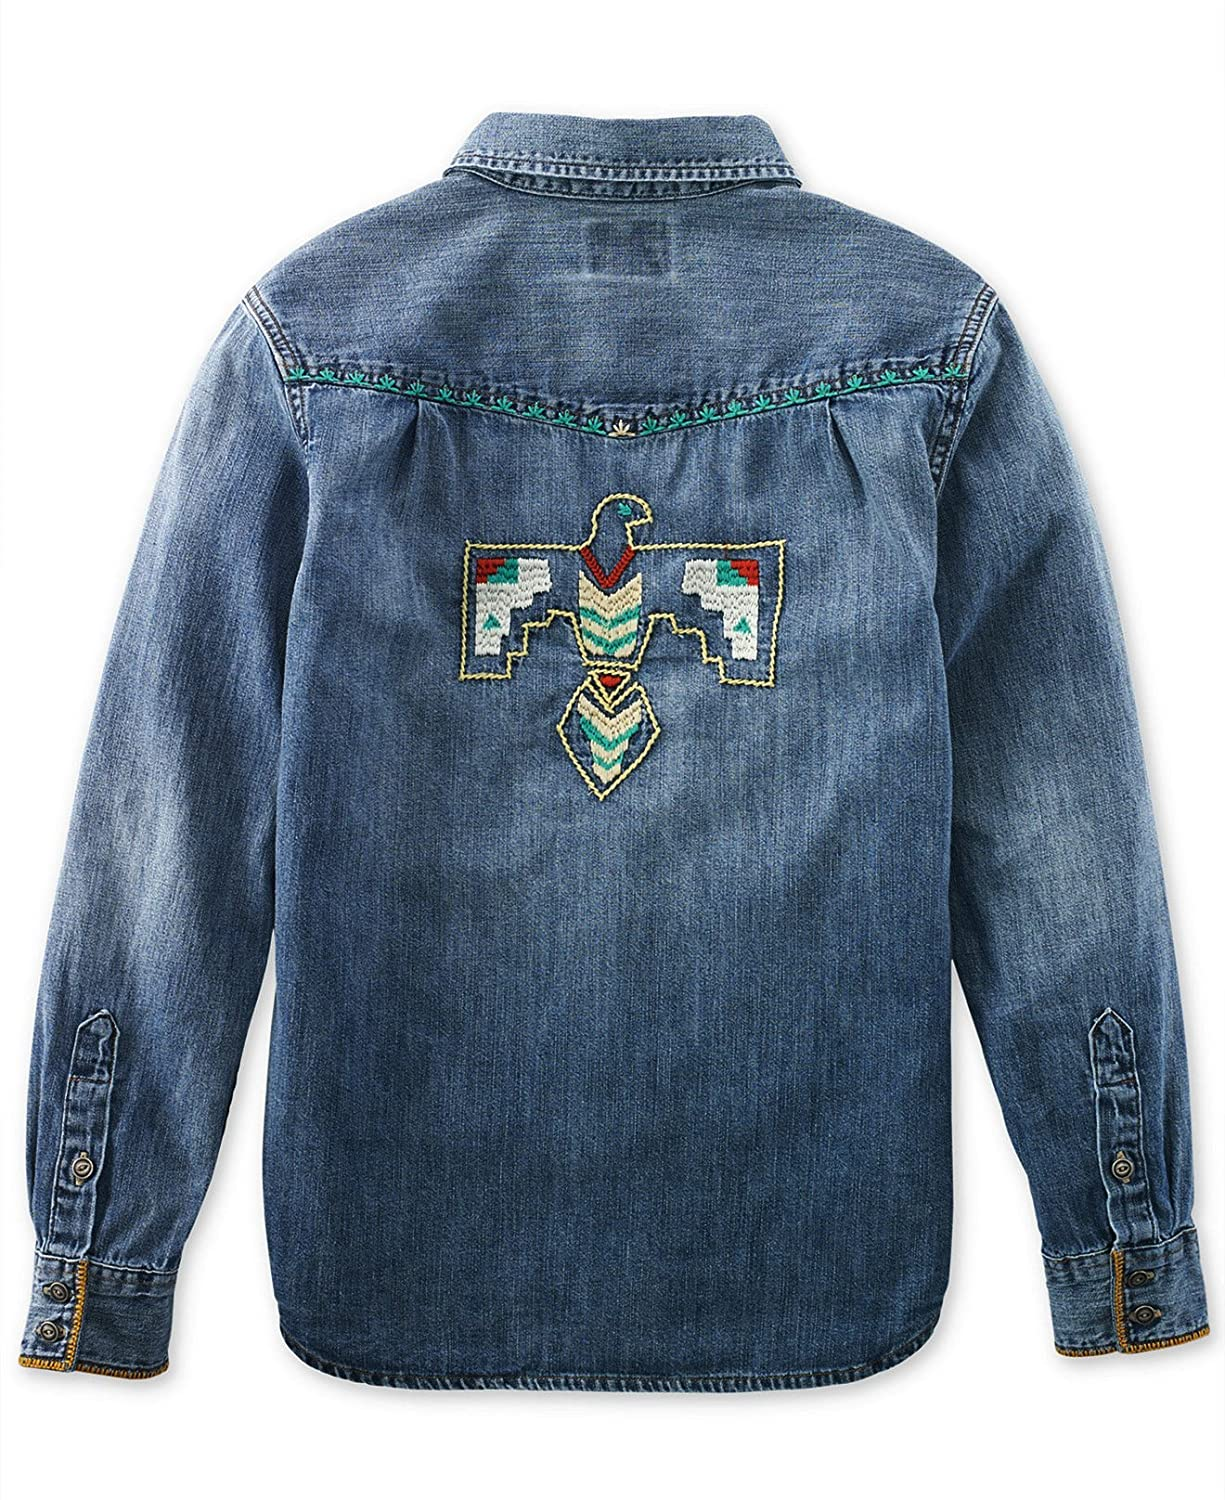 Ralph Lauren Boys Denim Western Long Sleeves Shirt